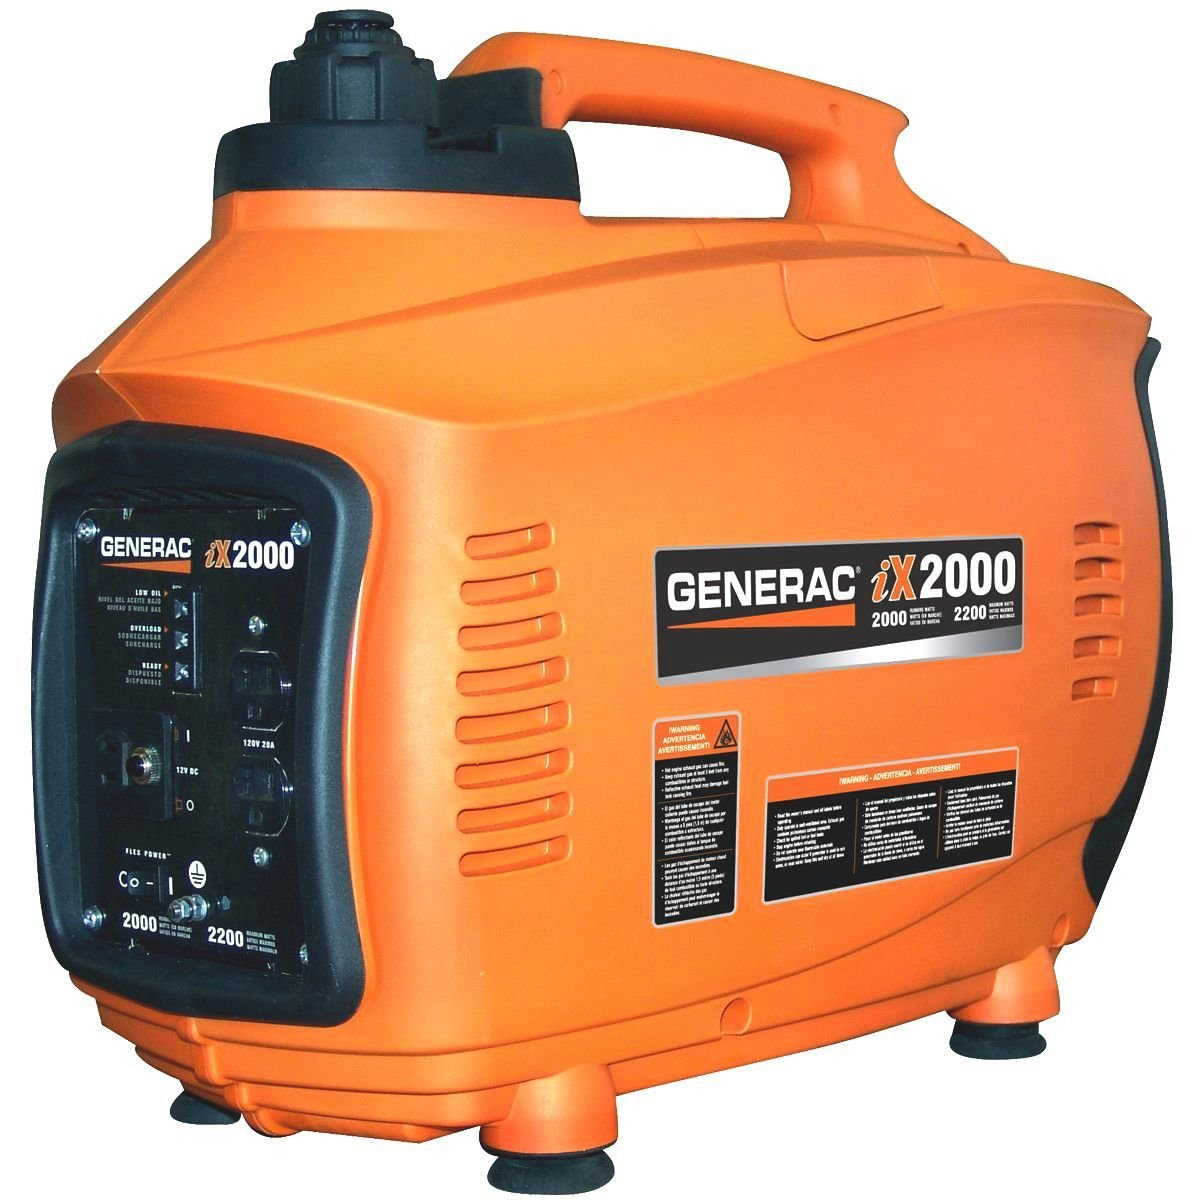 Amazon.com : Generac 5793, 2000 Running Watts/2200 Starting Watts, Gas  Powered Portable Inverter (Discontinued by Manufacturer) : Honda Generator  : Garden & ...